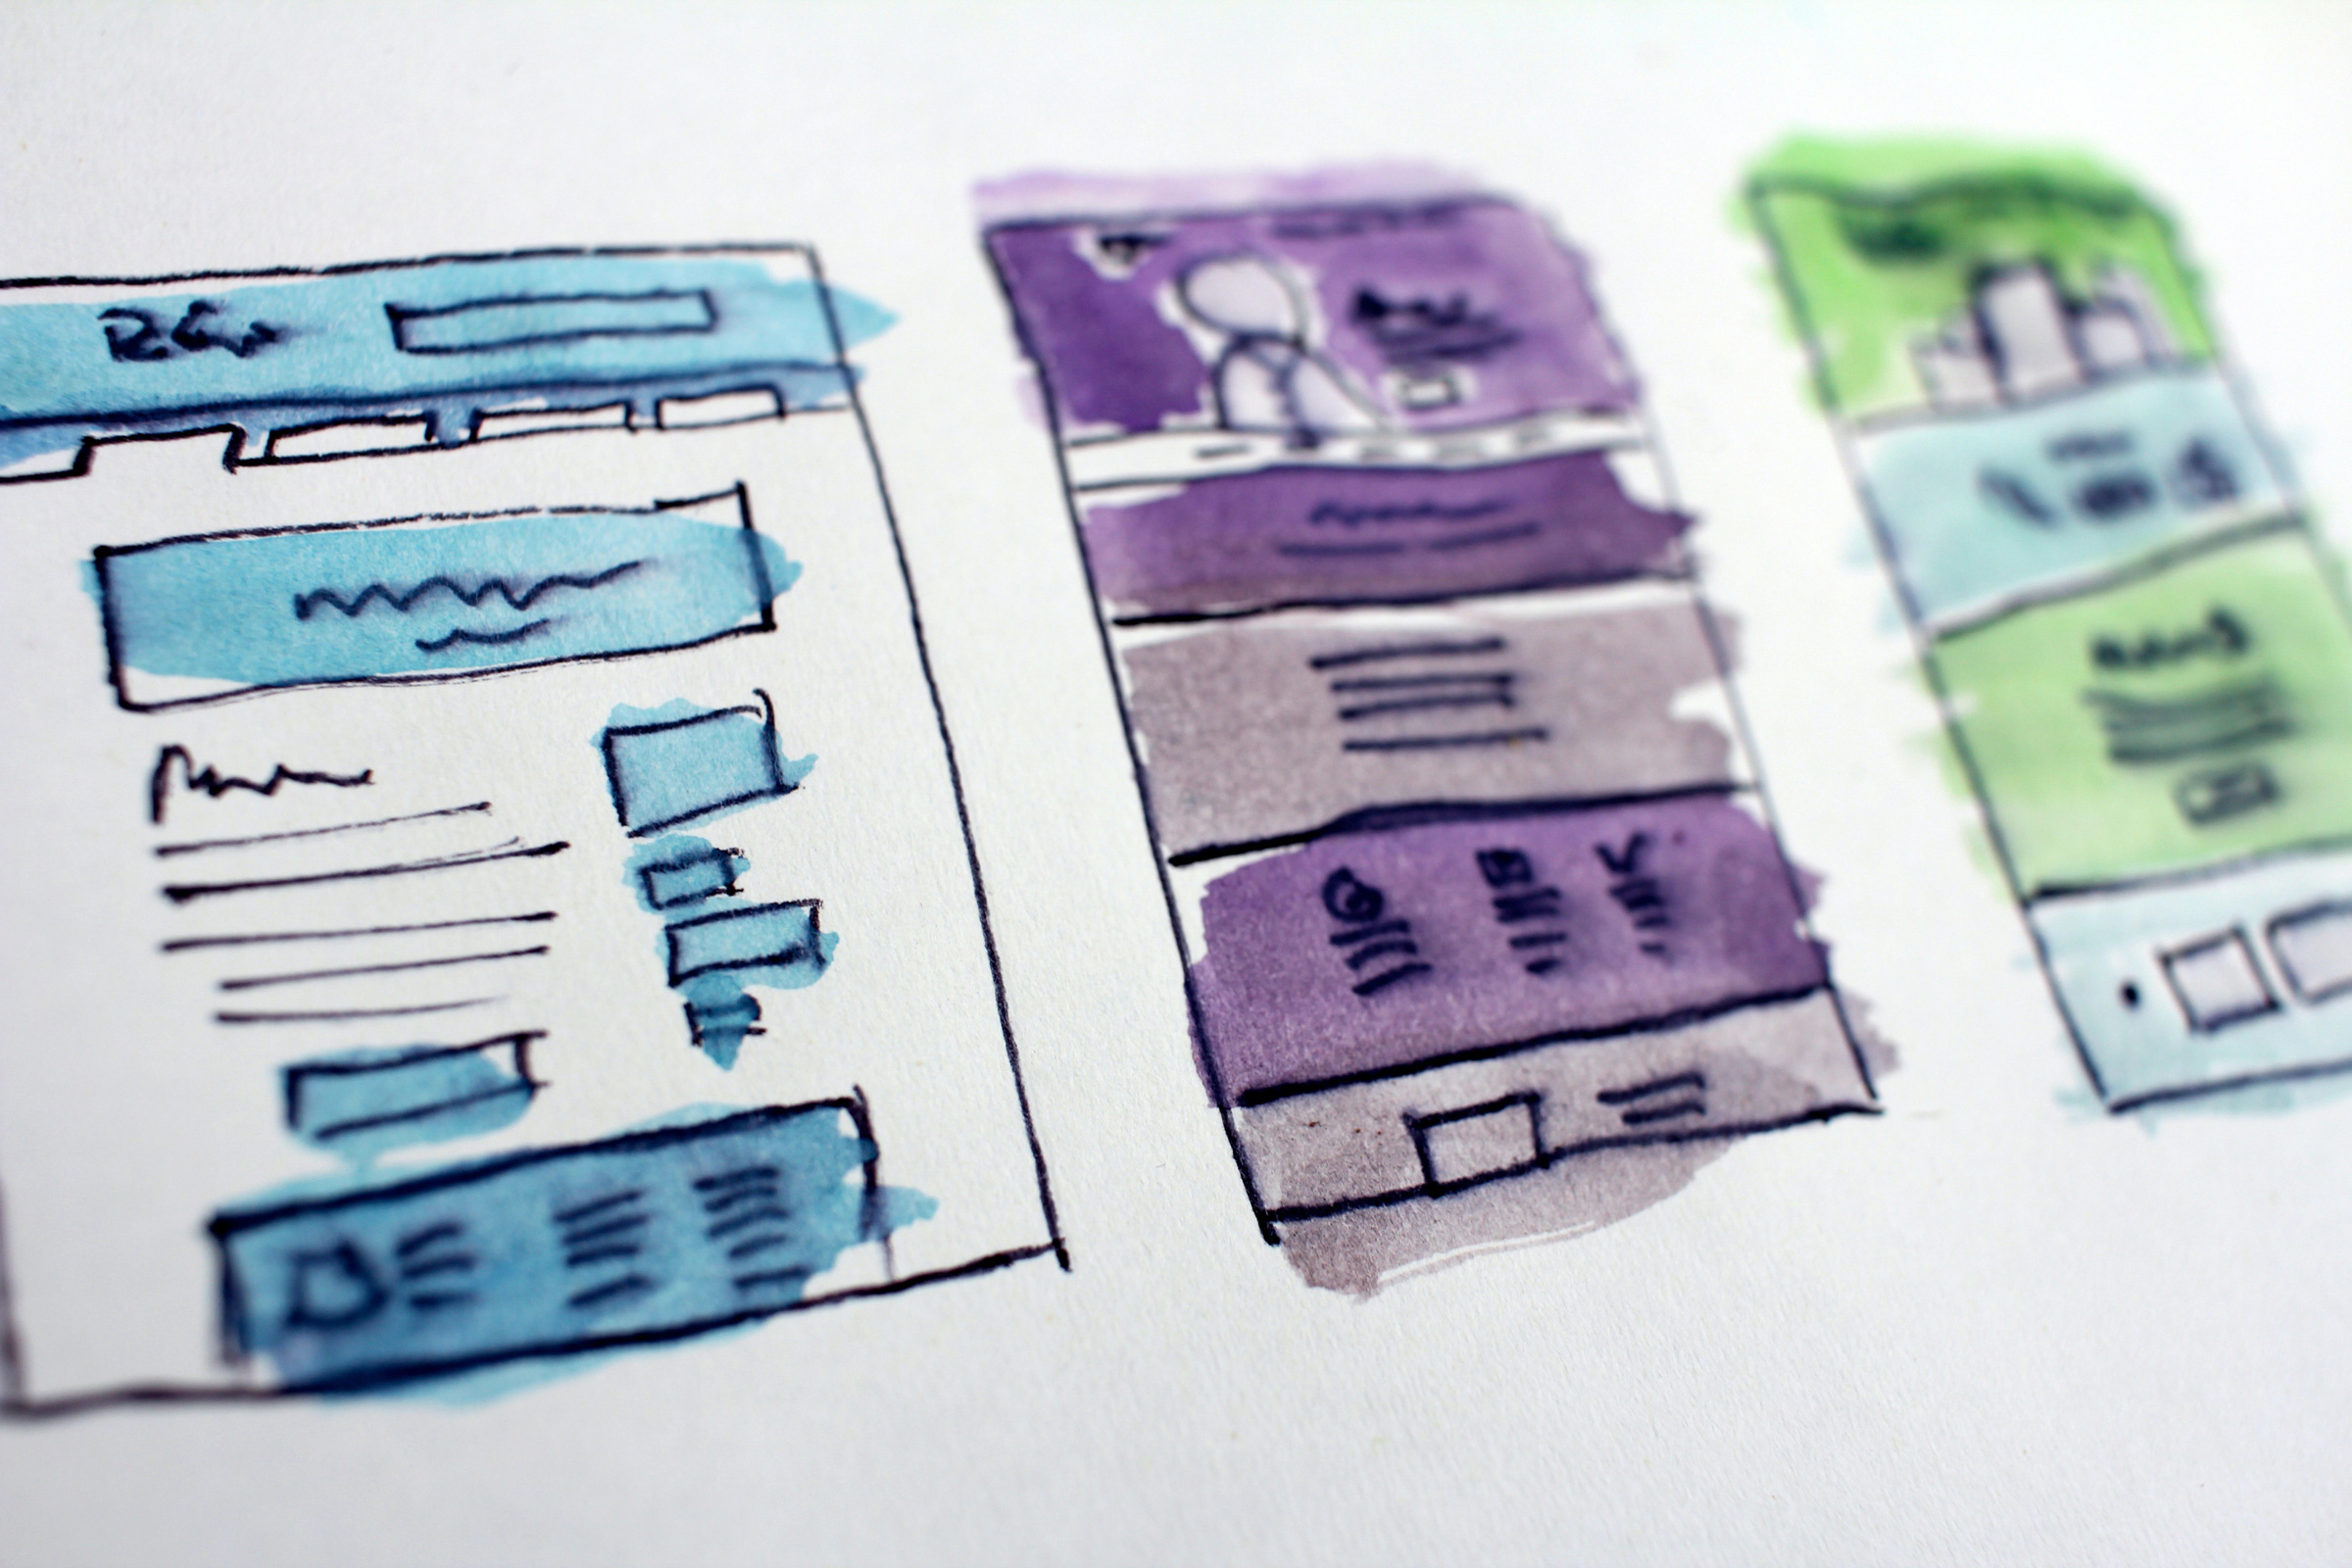 Illustration of Site Map and Wireframe